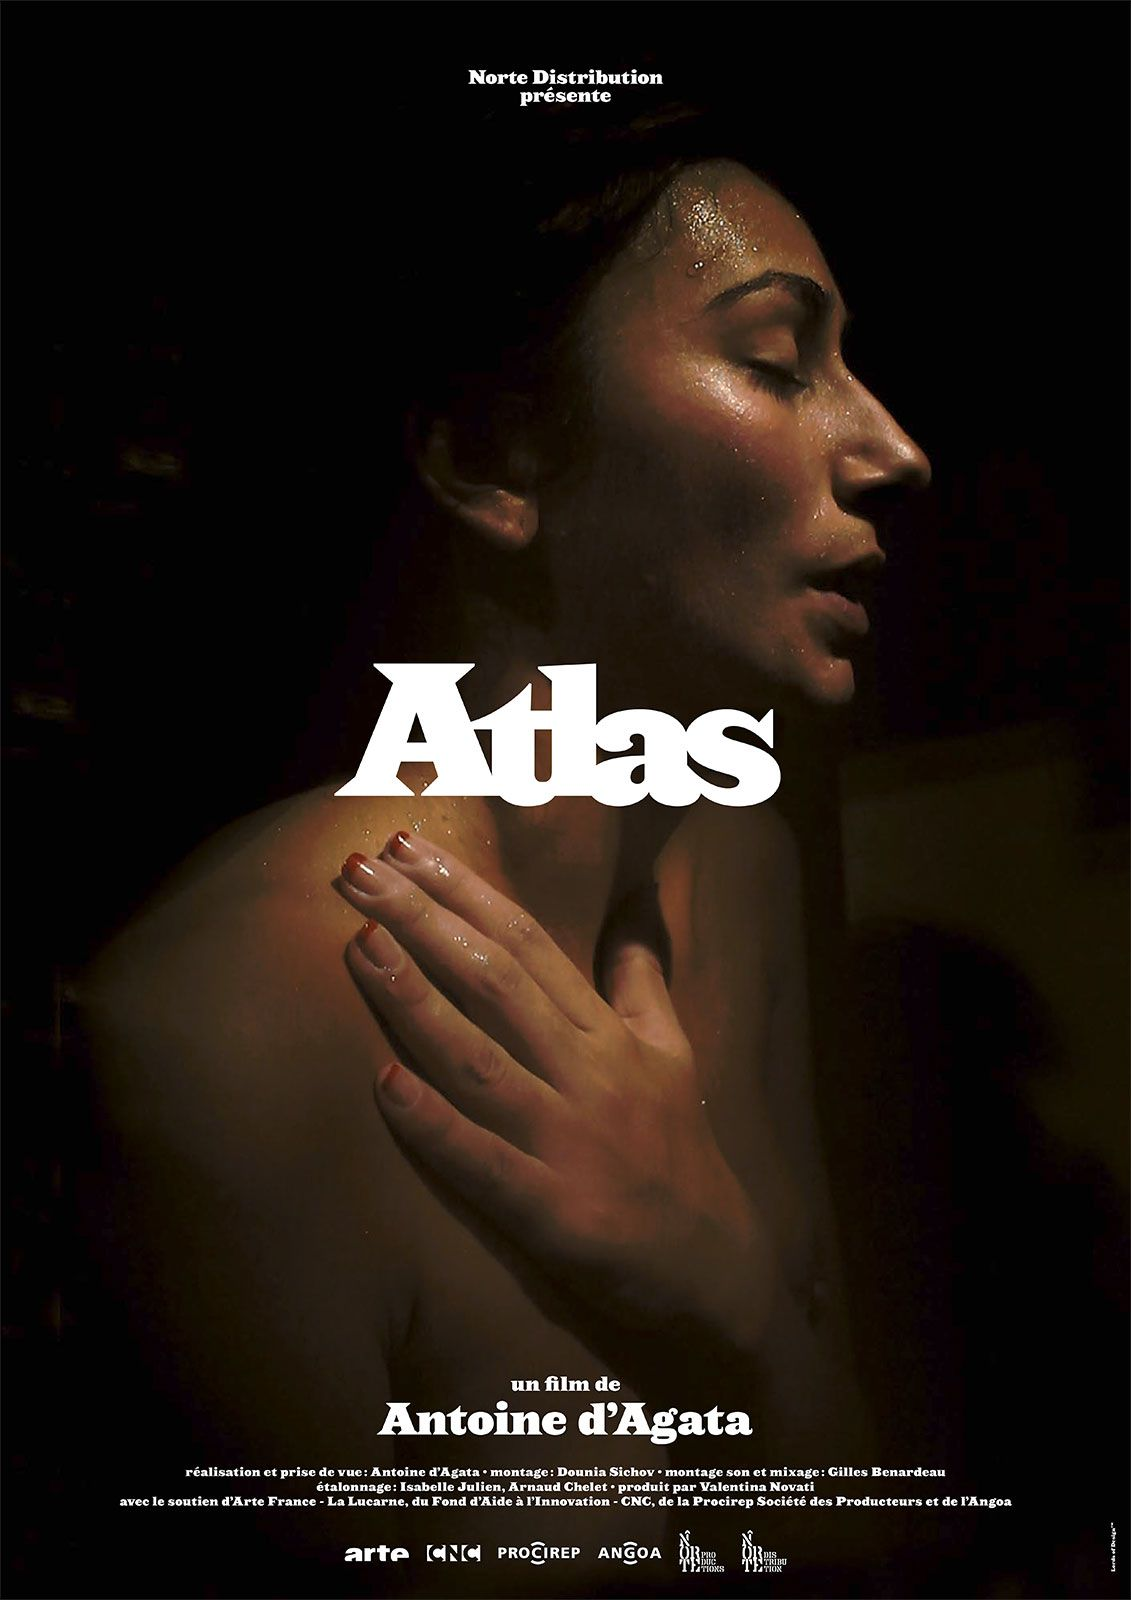 Atlas - Documentaire (2014) streaming VF gratuit complet